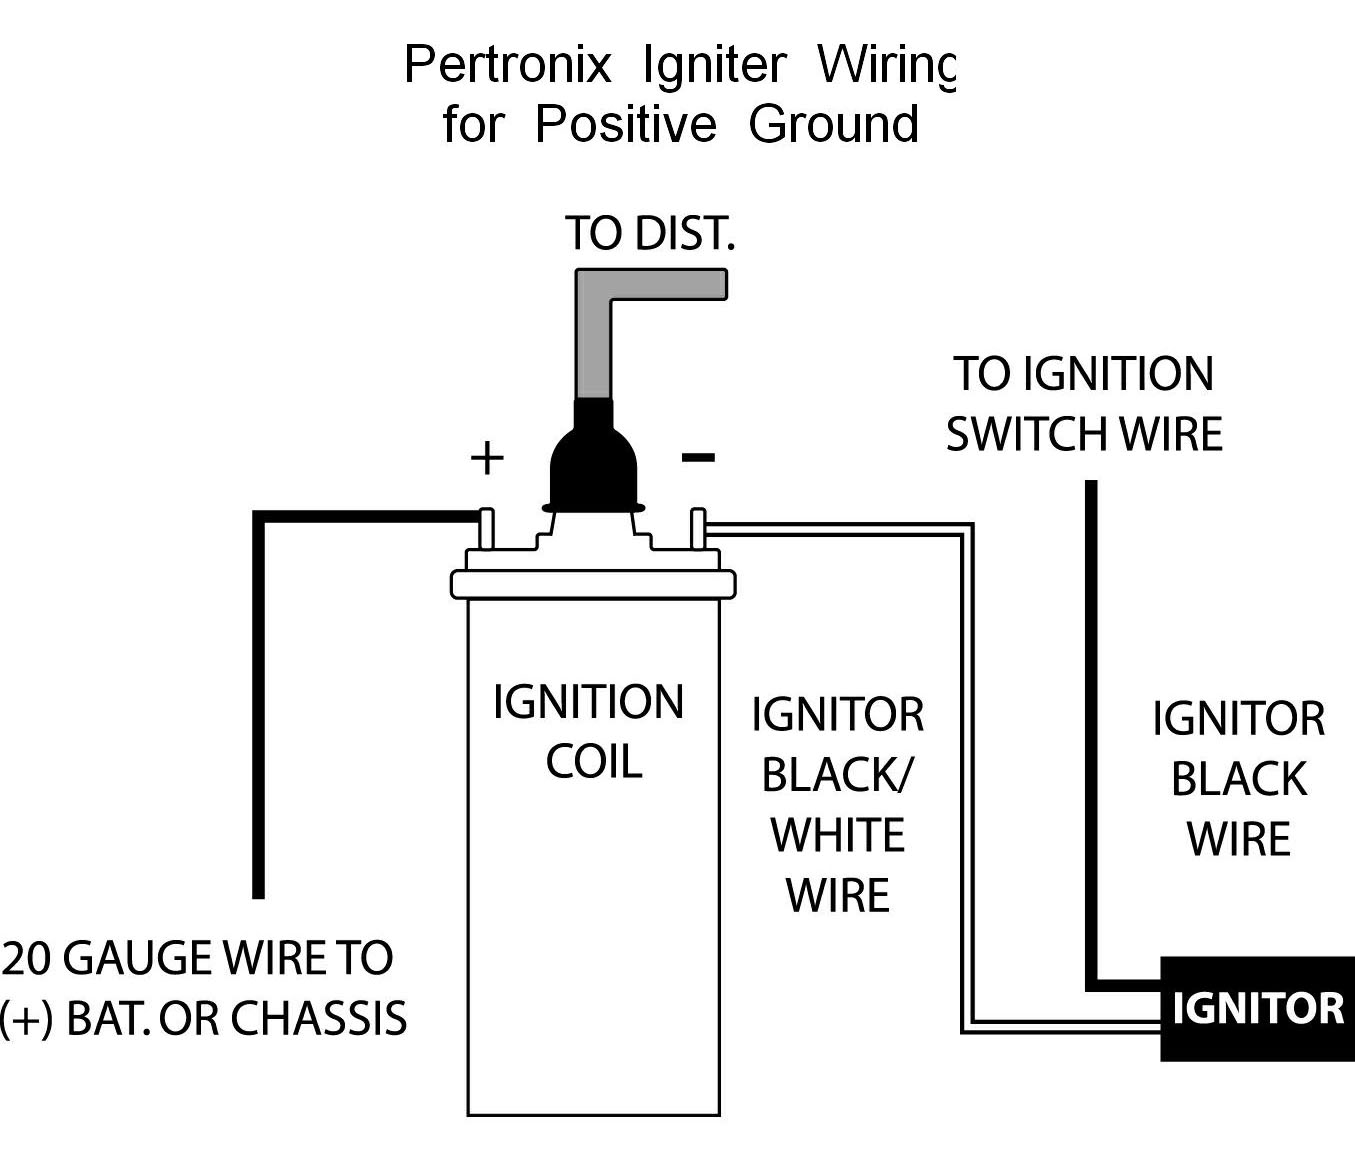 Prime Coil And Ignition Switch No Image Basic Electronics Wiring Diagram Dandim Mohammedshrine Wiring Diagrams Dandimmohammedshrineorg